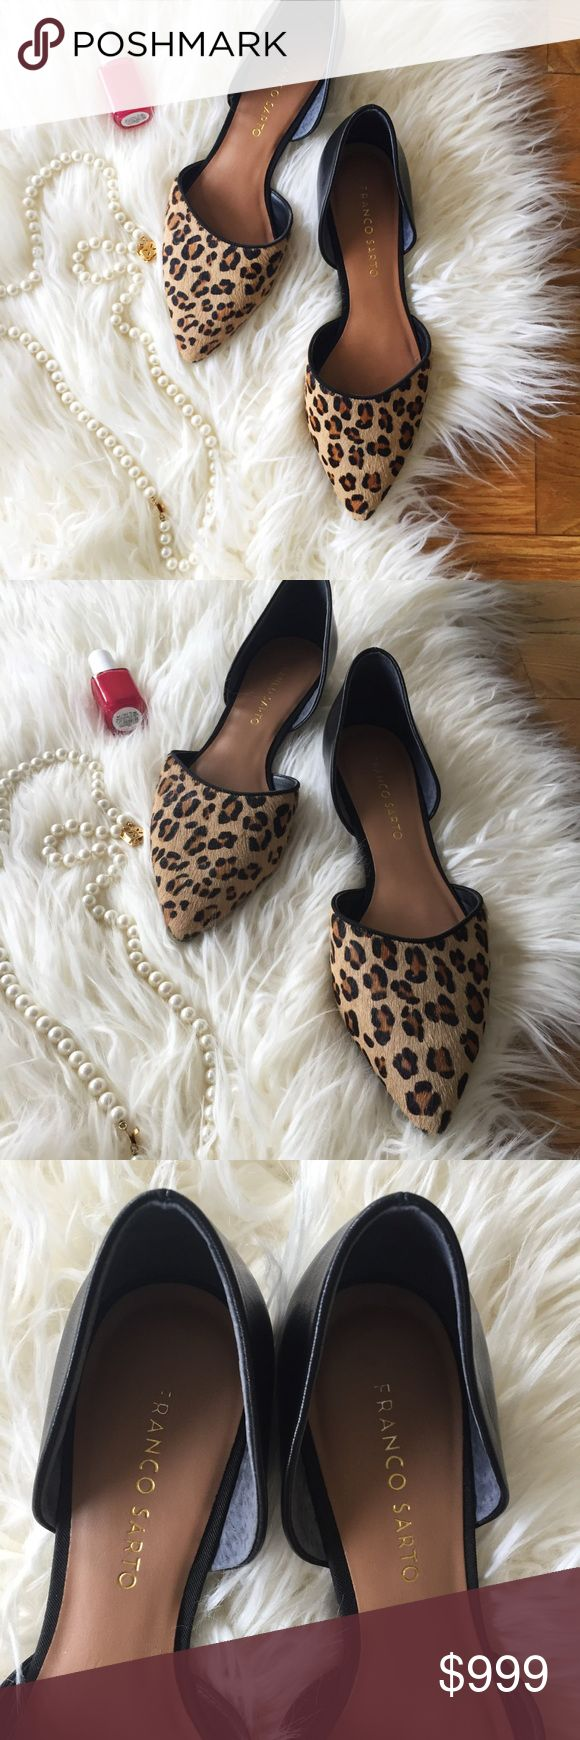 Franco Sarto cheetah print leather flats These are such cute leather flats that go with anything! Very lightly worn, the bottoms and insides shoe no signs of significant wear. Add these to a pair of skinnies and a black top for a cute outfit! Franco Sarto Shoes Flats & Loafers